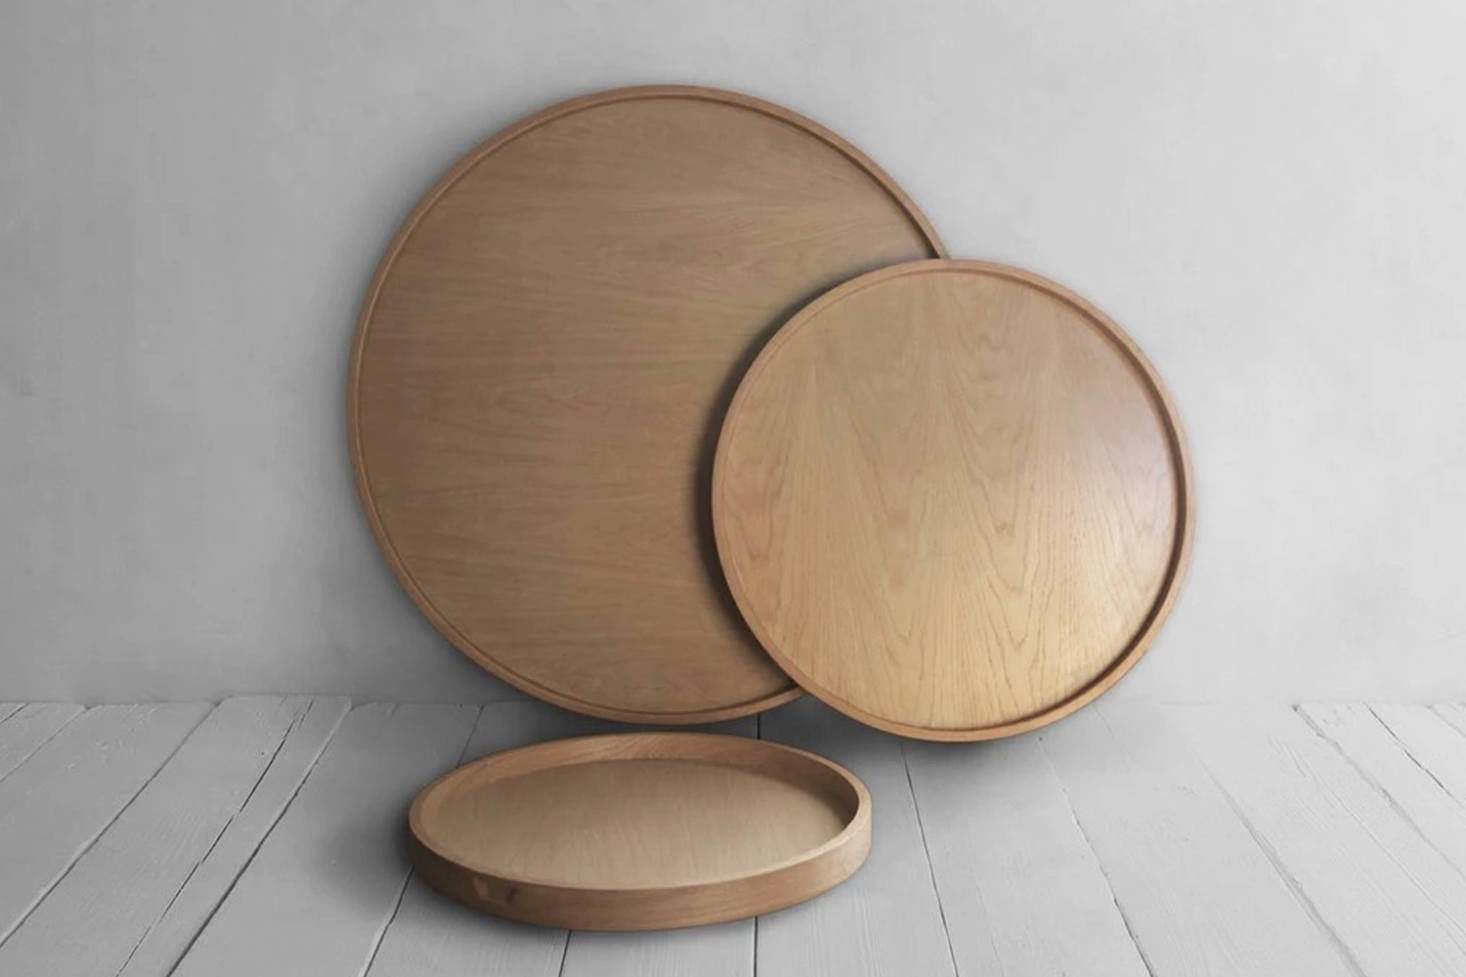 10 Easy Pieces: Round Wood Trays